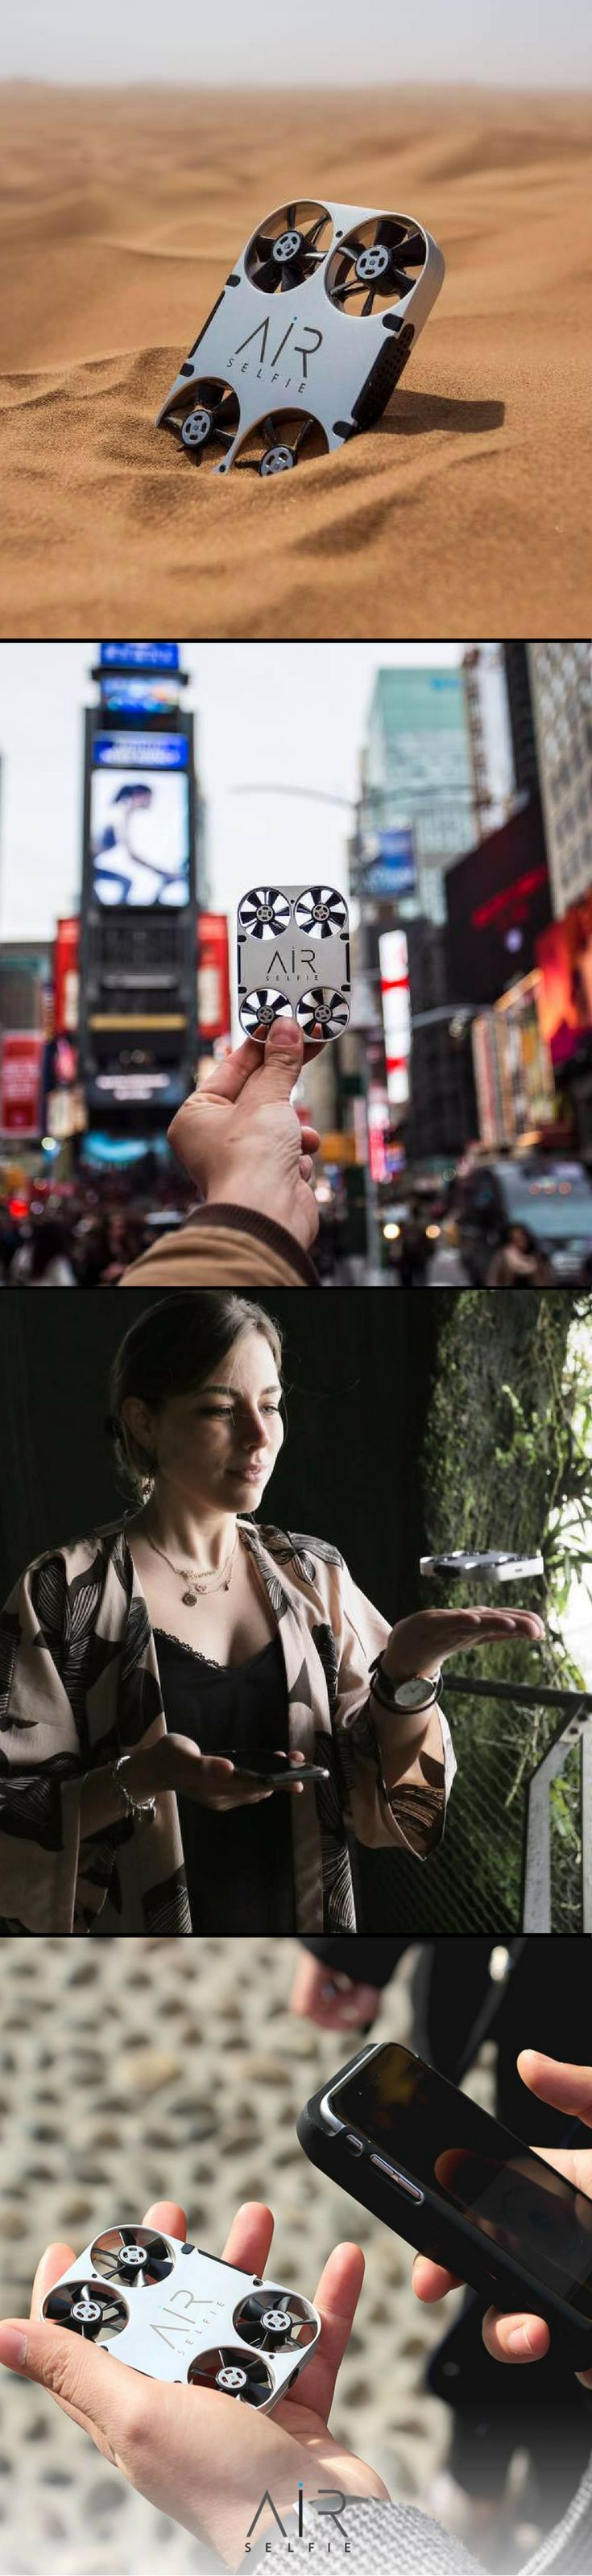 AirSelfie is Here! Your own take anywhere drone - it's light and compact, keep it in your pocket or bag... Available for iphone or Samsung Edge on Amazon! #AirSelfie #drone